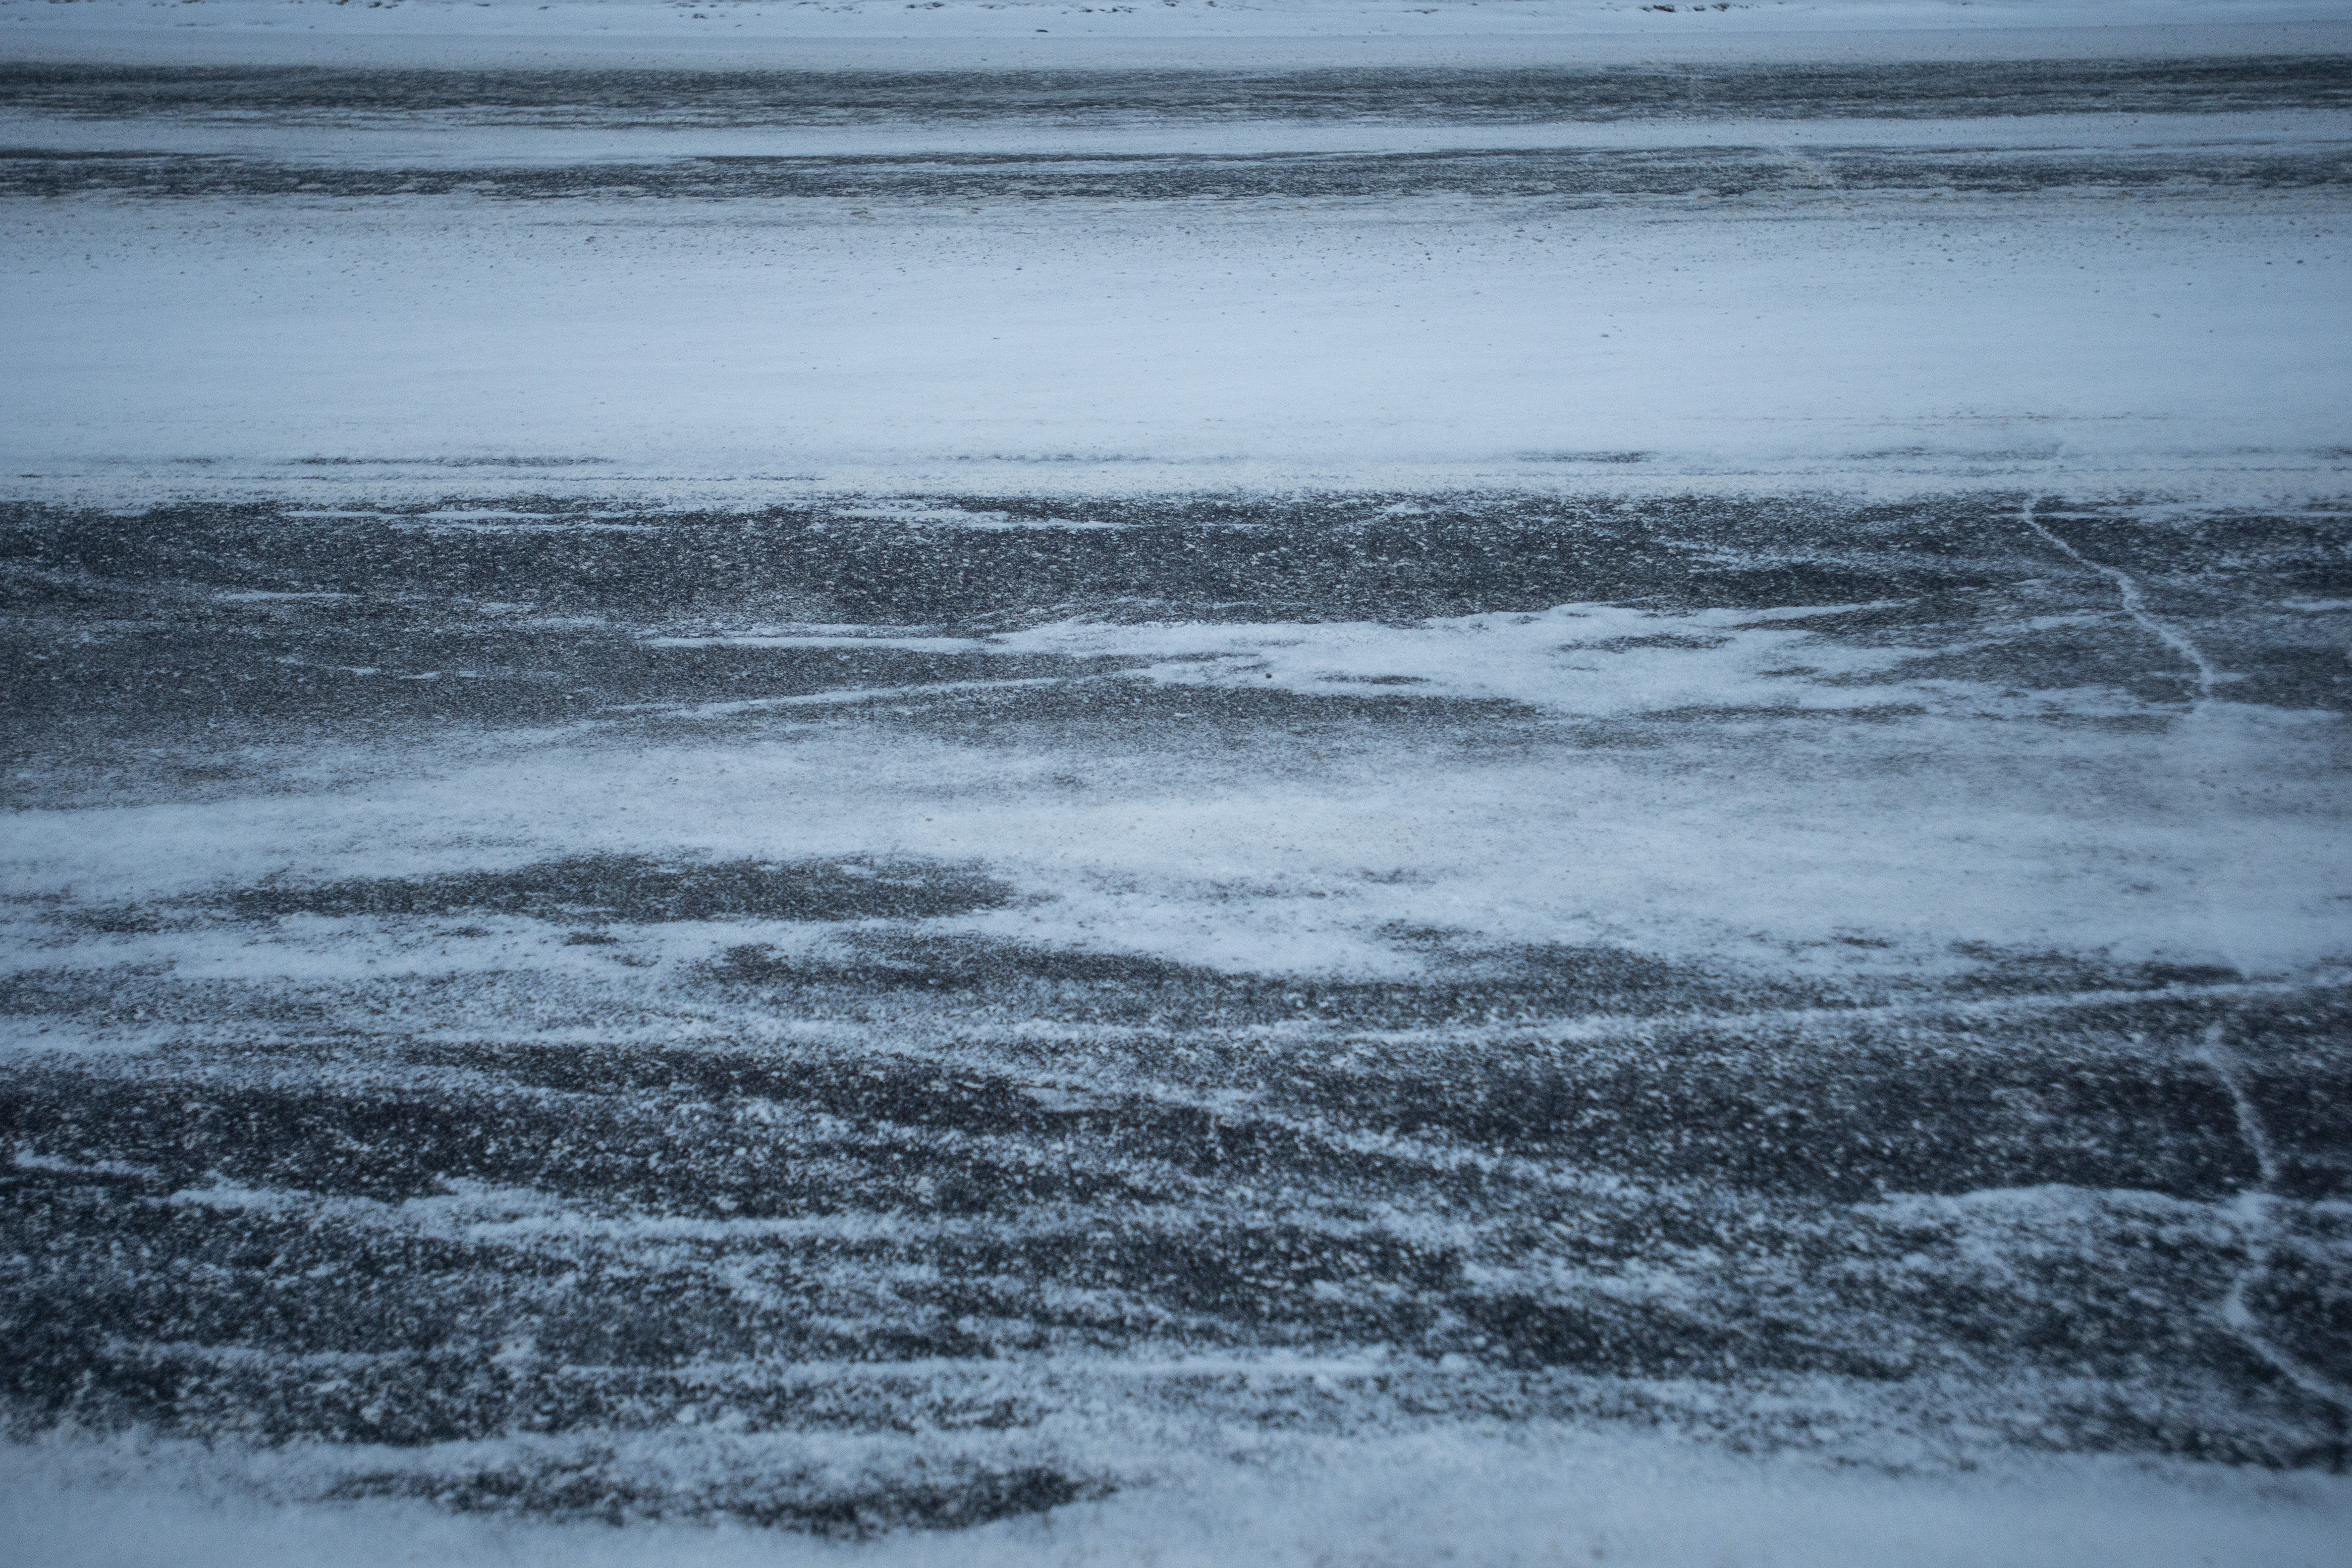 Burst of snow followed by multiple crashes across mid-Michigan